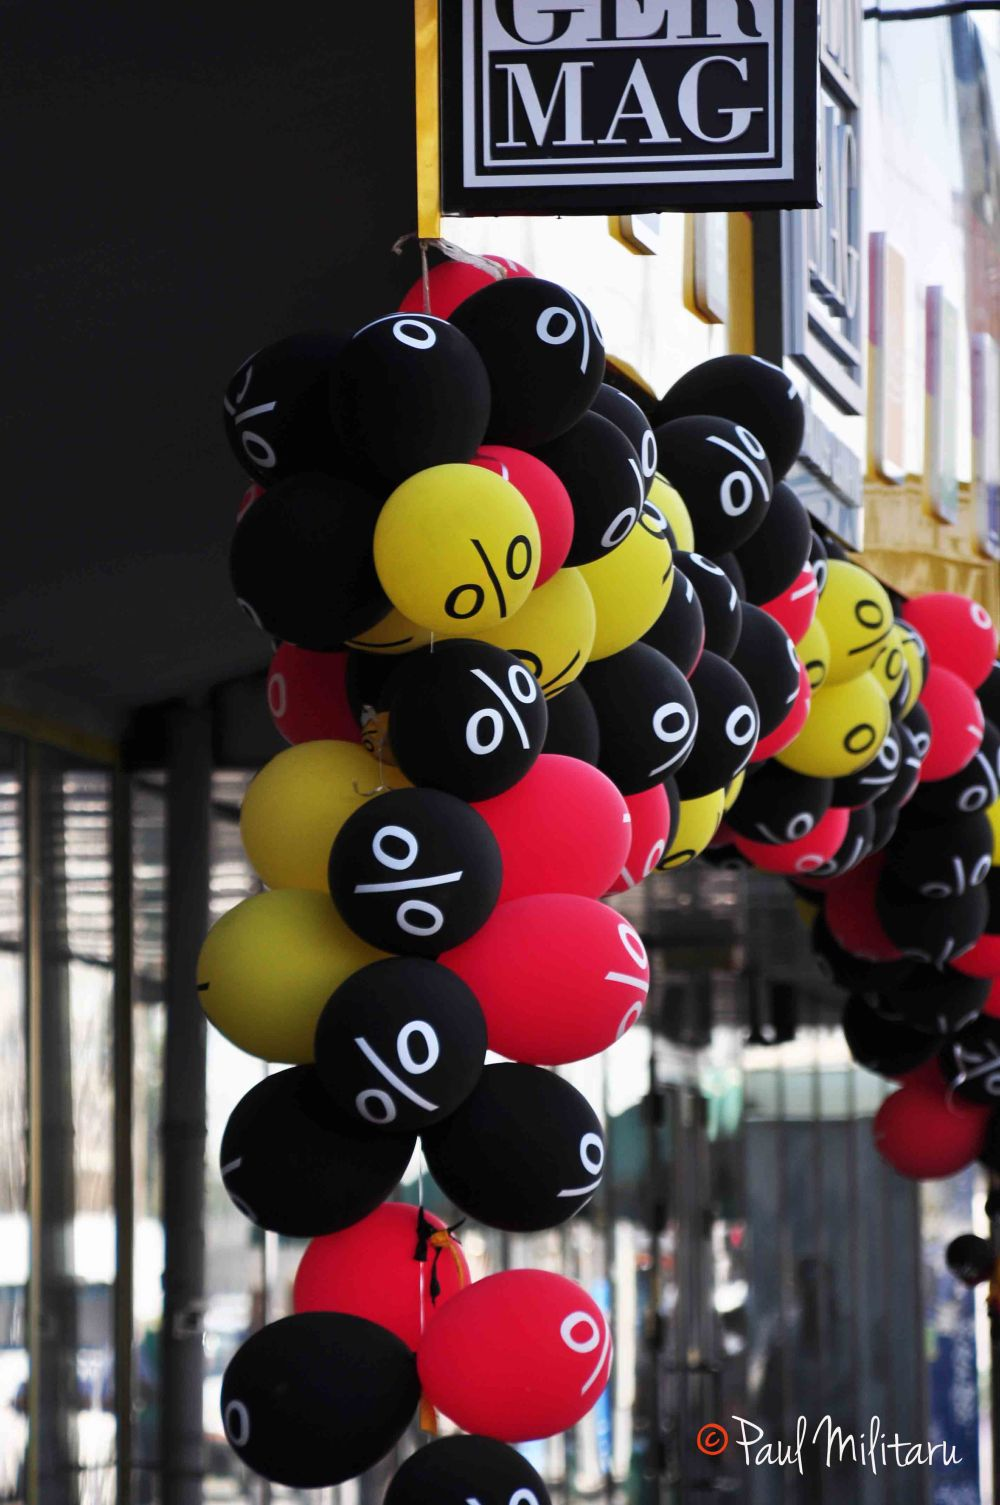 colored balloons - red, yellow and black